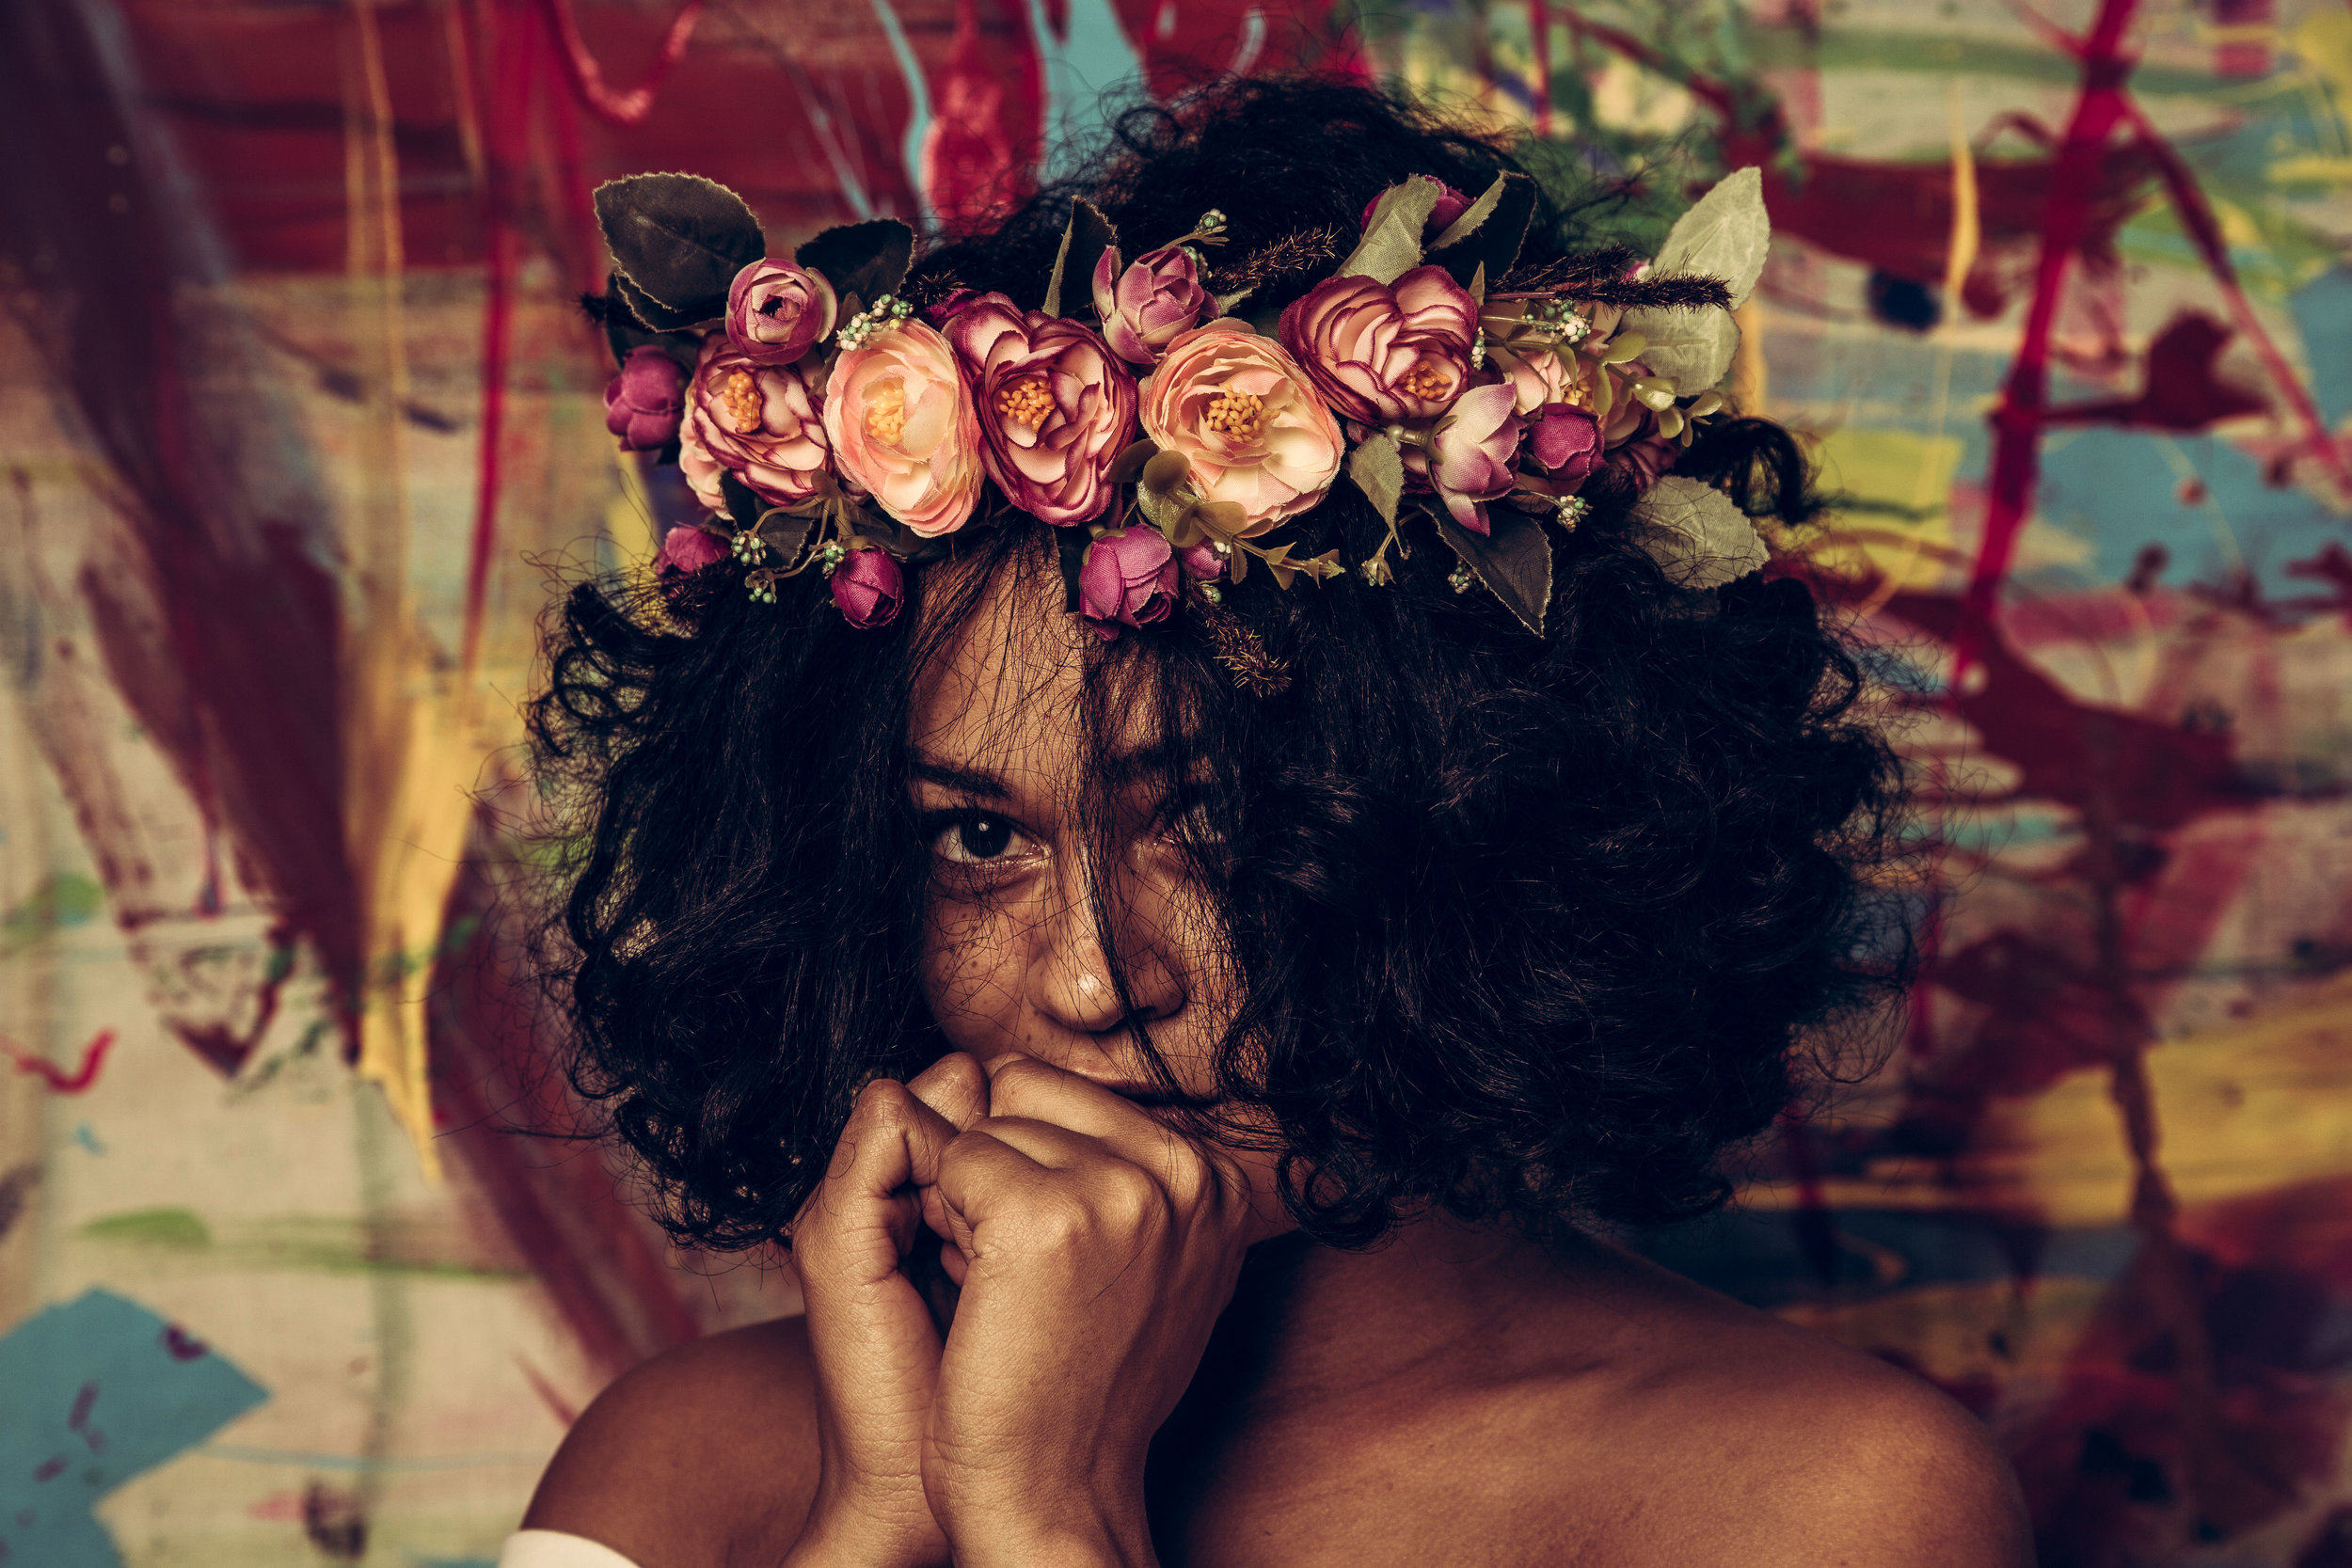 from  Flower Crown Portrait Series by Trokon V. Hill